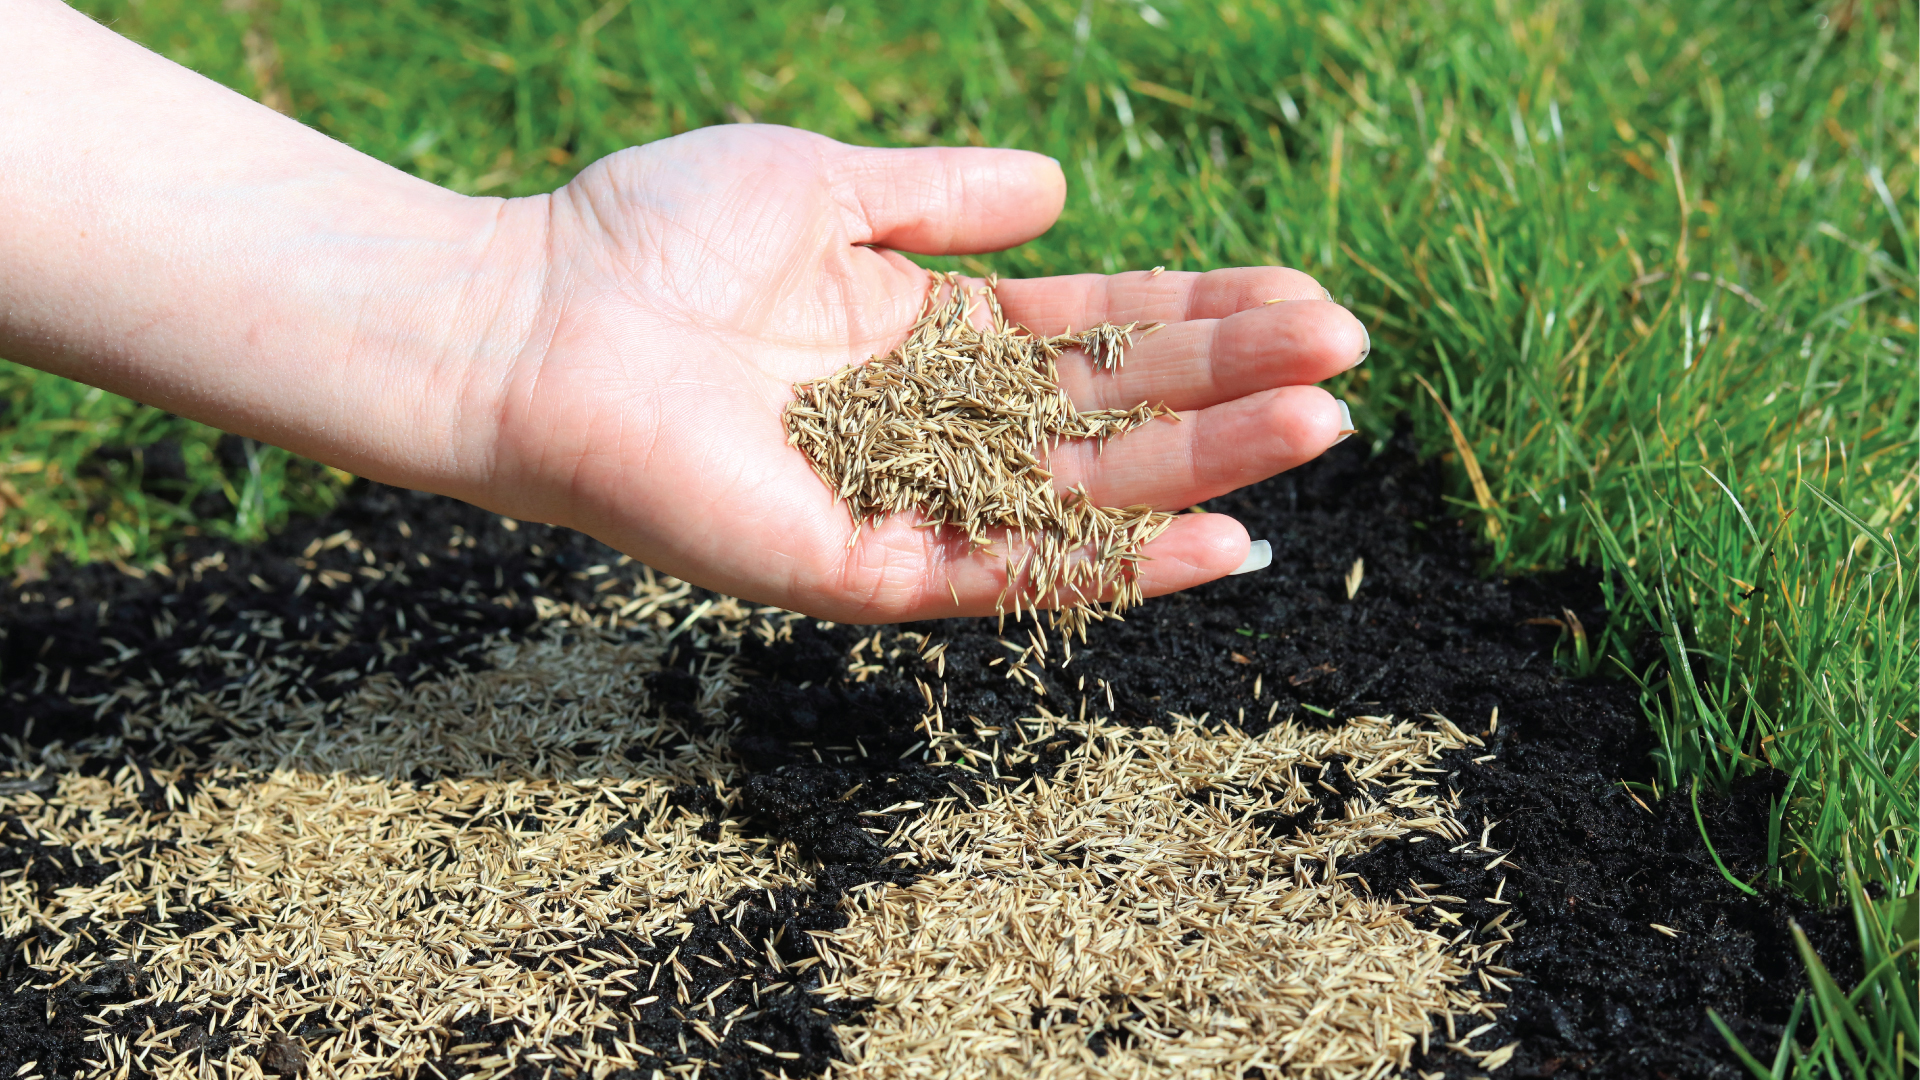 Overseeding Lawns Everything You Need To Know About Overseeding Tee Time Lawn Care Featured